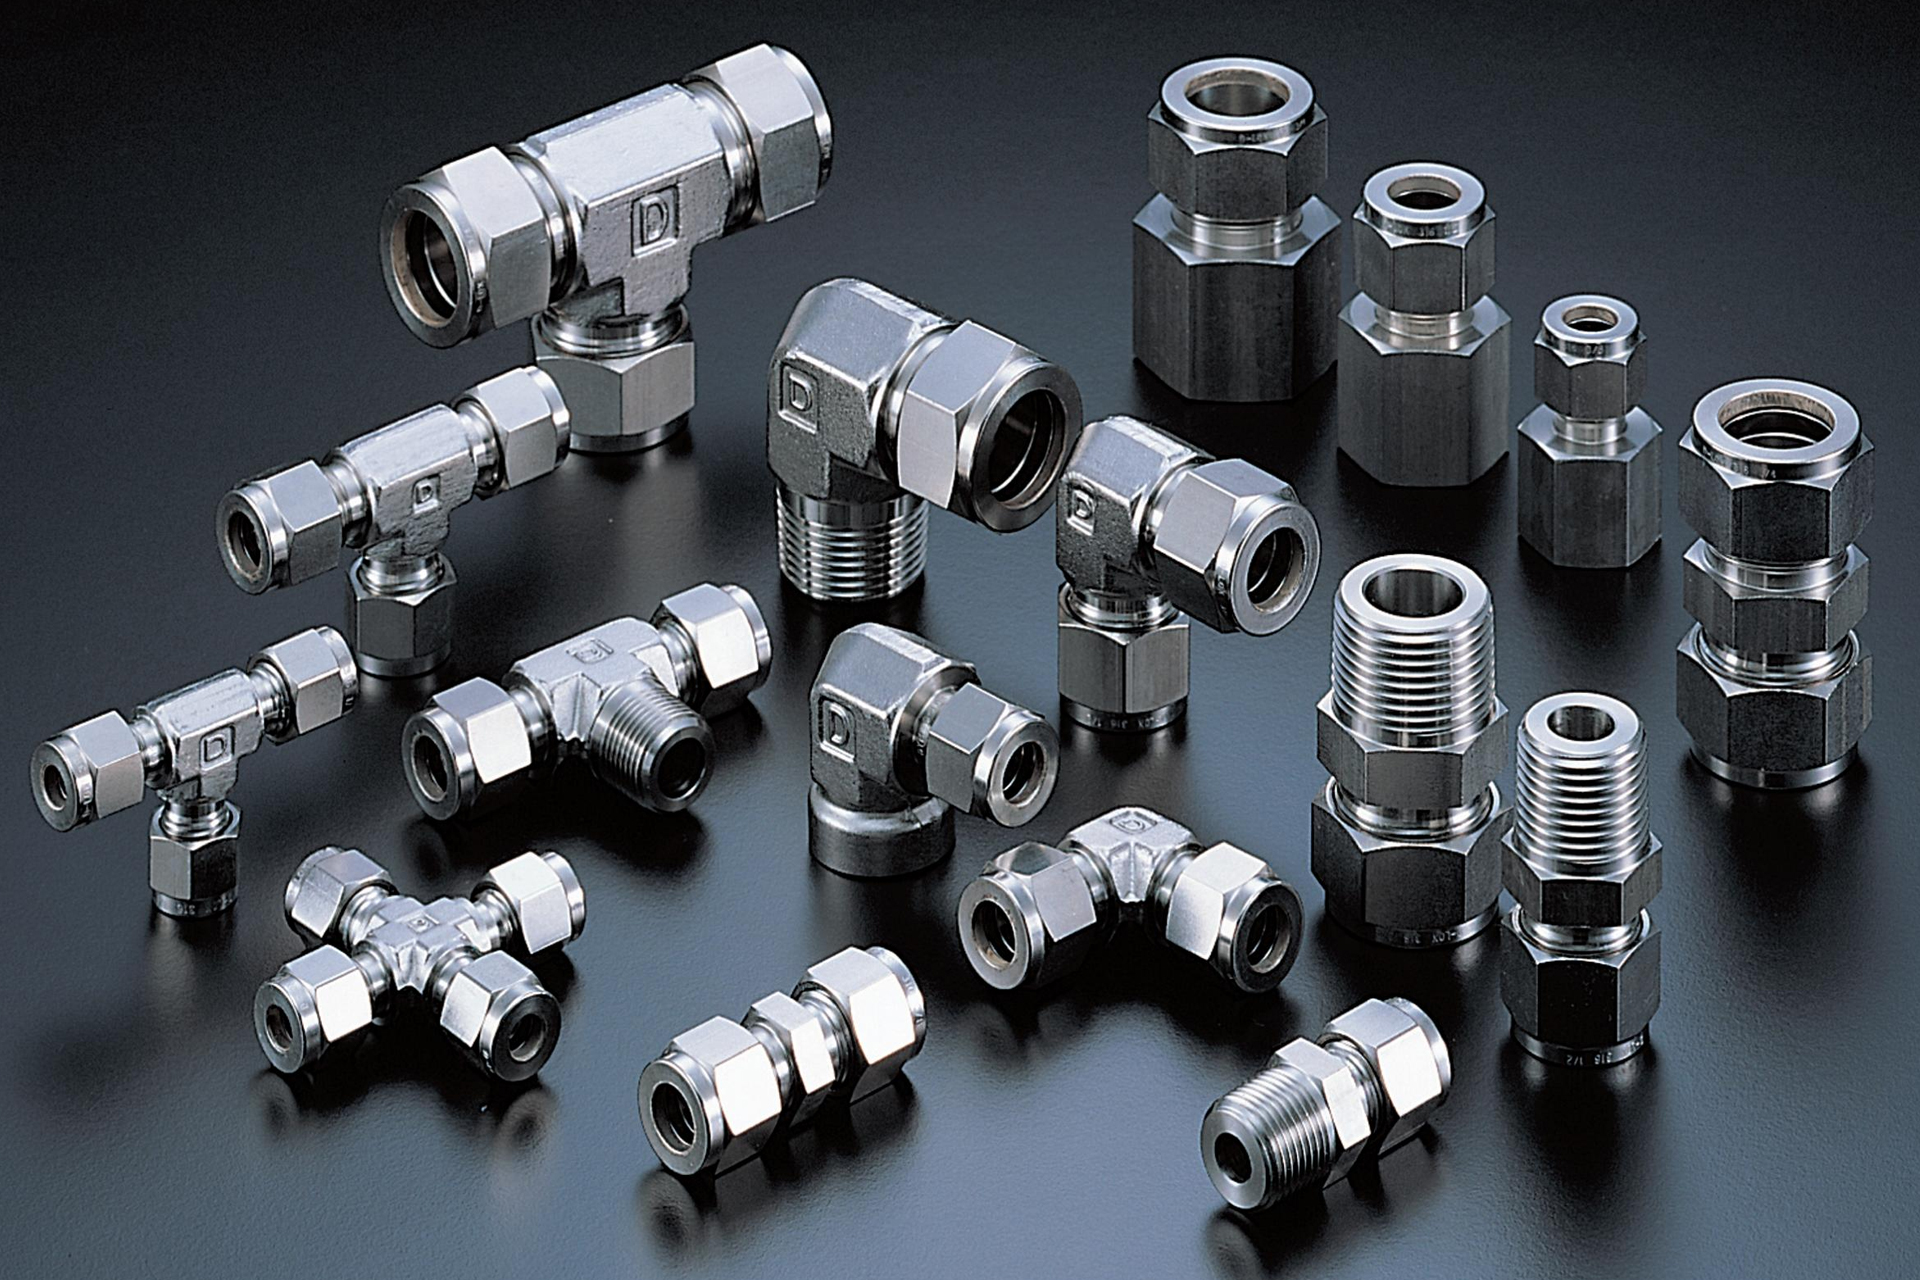 ferrule-fitting-manufacturers-suppliers-exporters-stockist